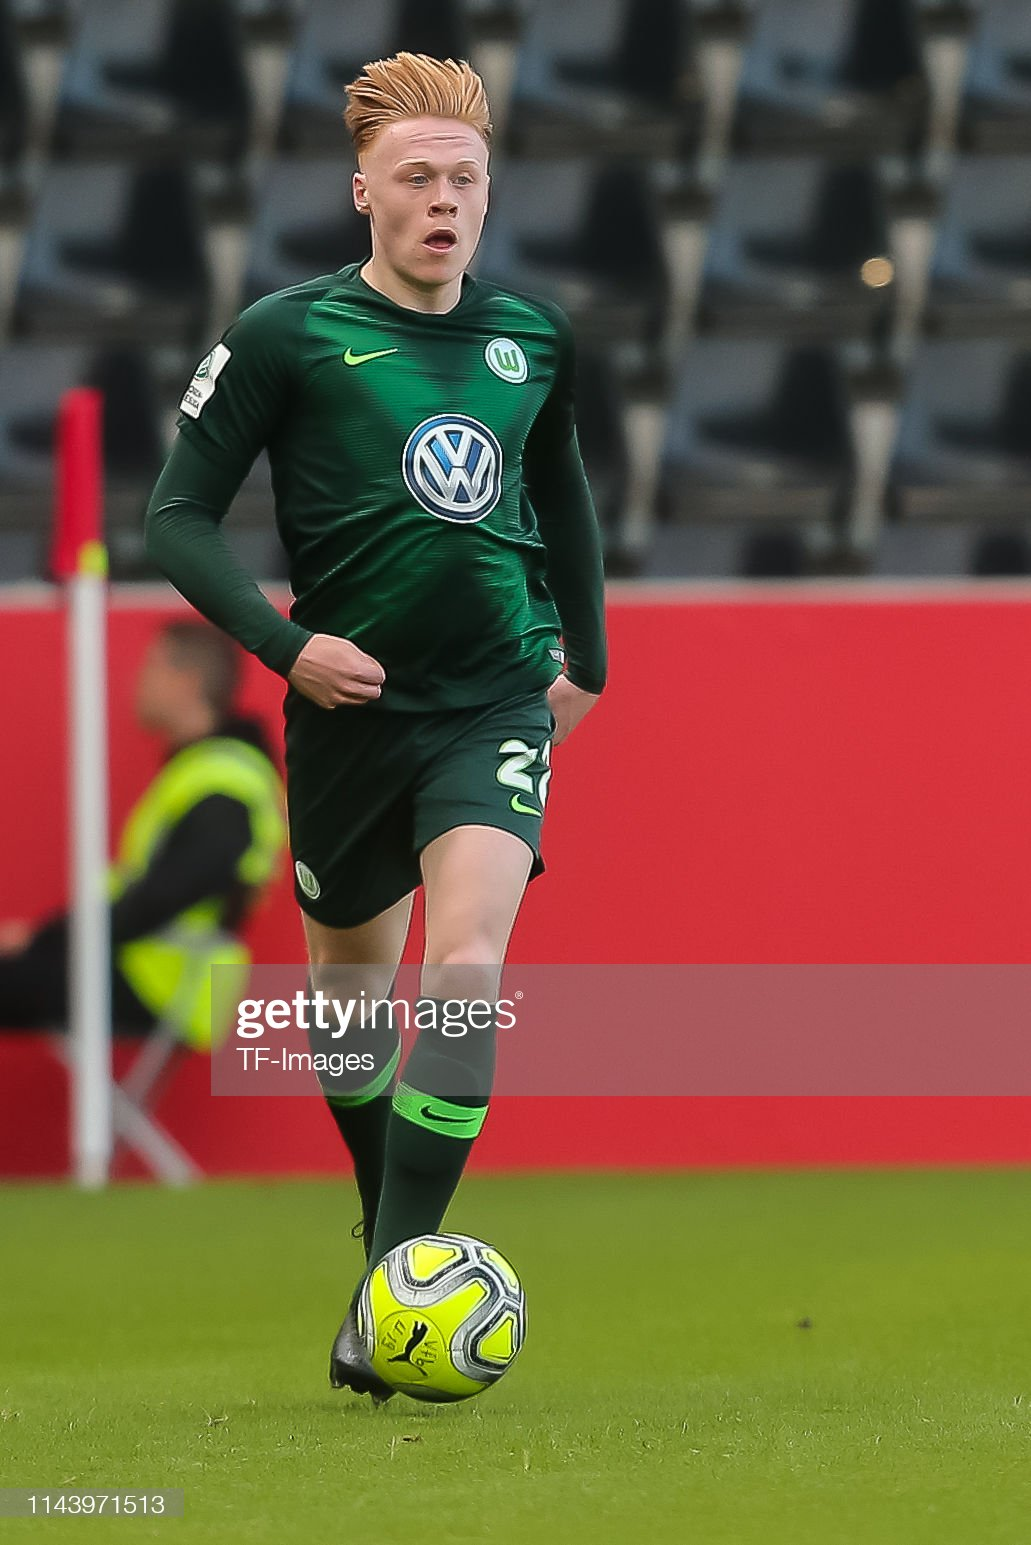 https://media.gettyimages.com/photos/leon-sommer-of-vfl-wolfsburg-u19-controls-the-ball-during-the-german-picture-id1143971513?s=2048x2048